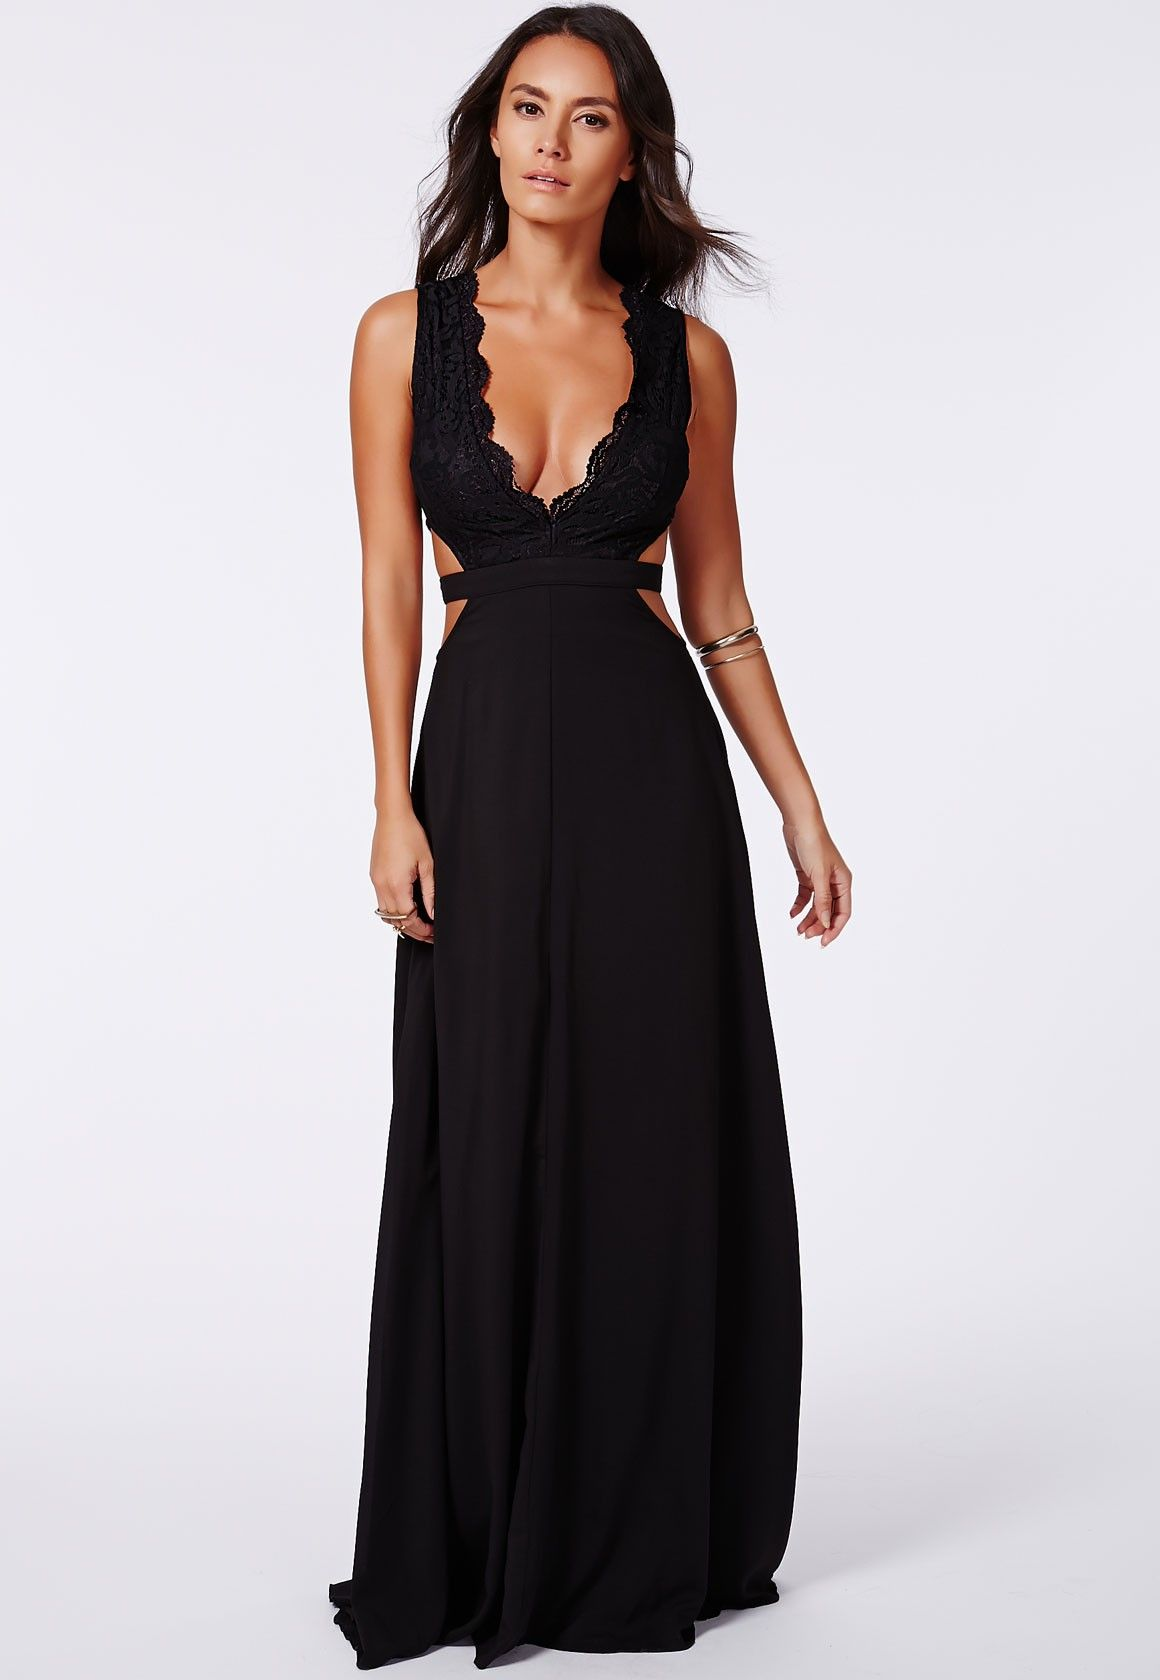 Lovely Black Maxi Dresses Ideas : Black Maxi Dress | Lovely Black ...